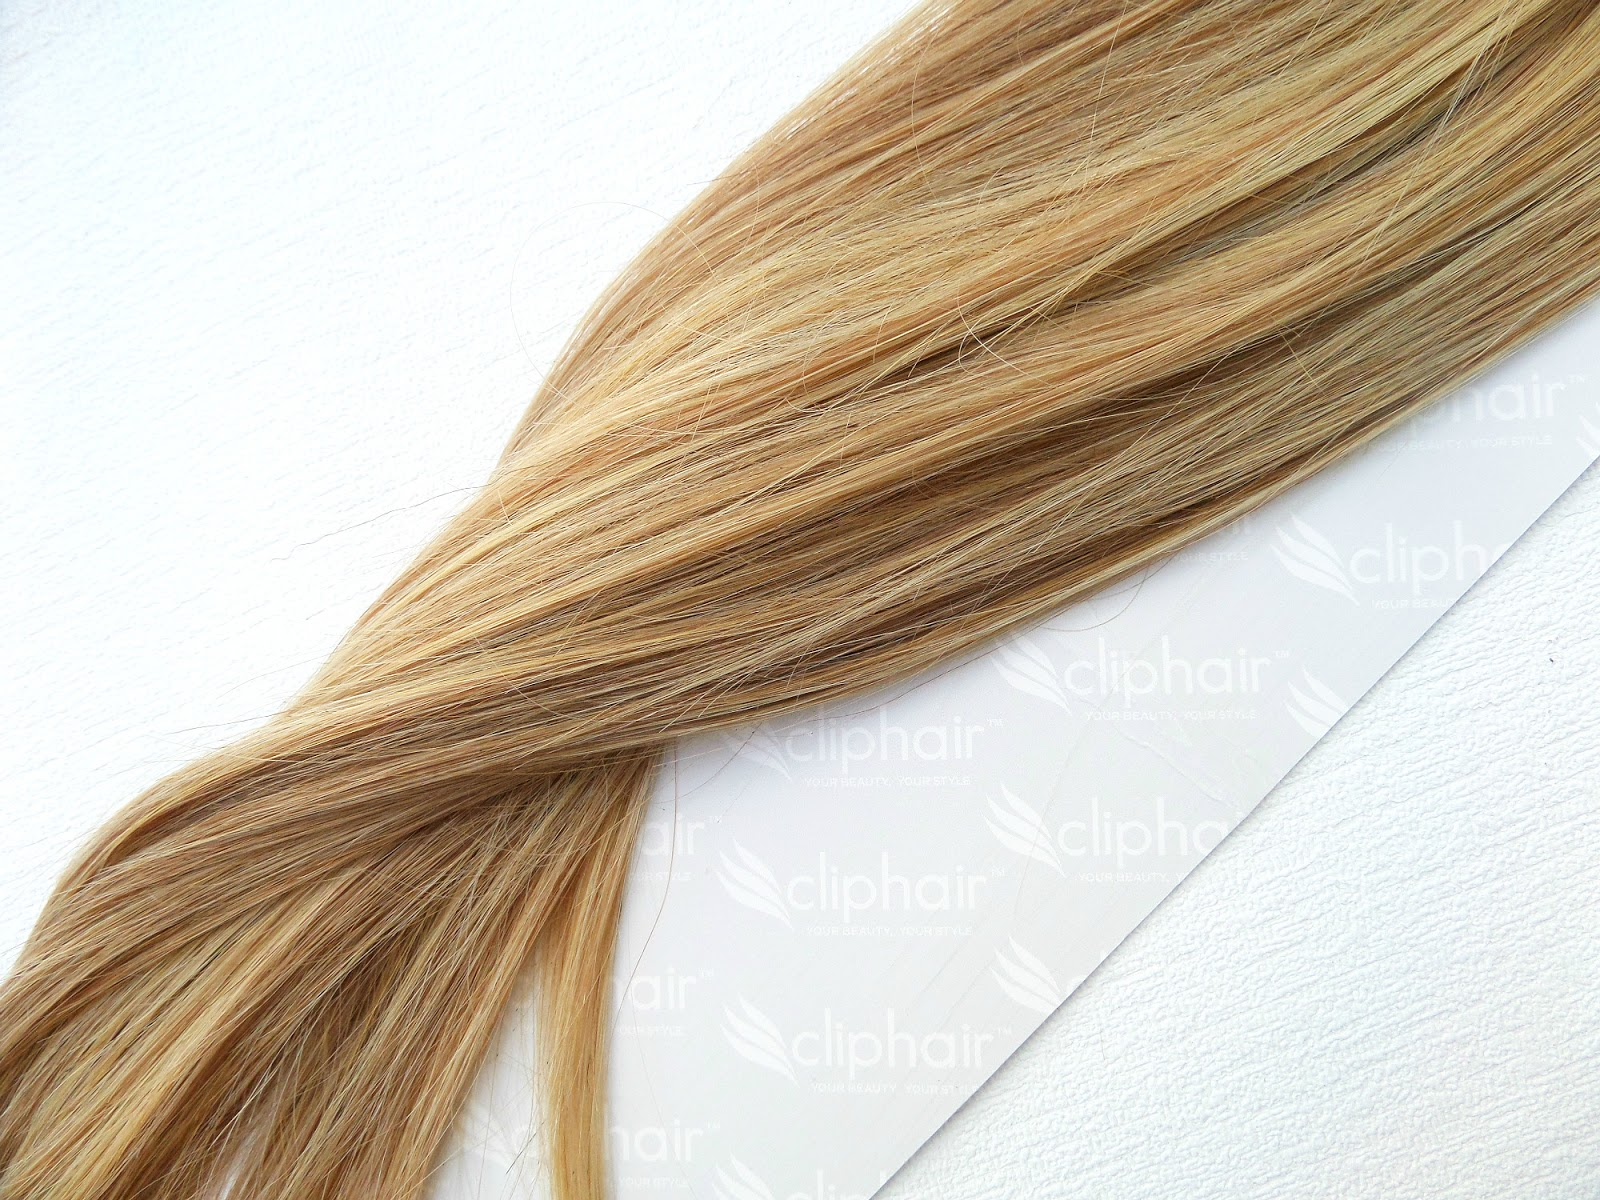 ClipHair Blonde Brown Mix Full head extensions review